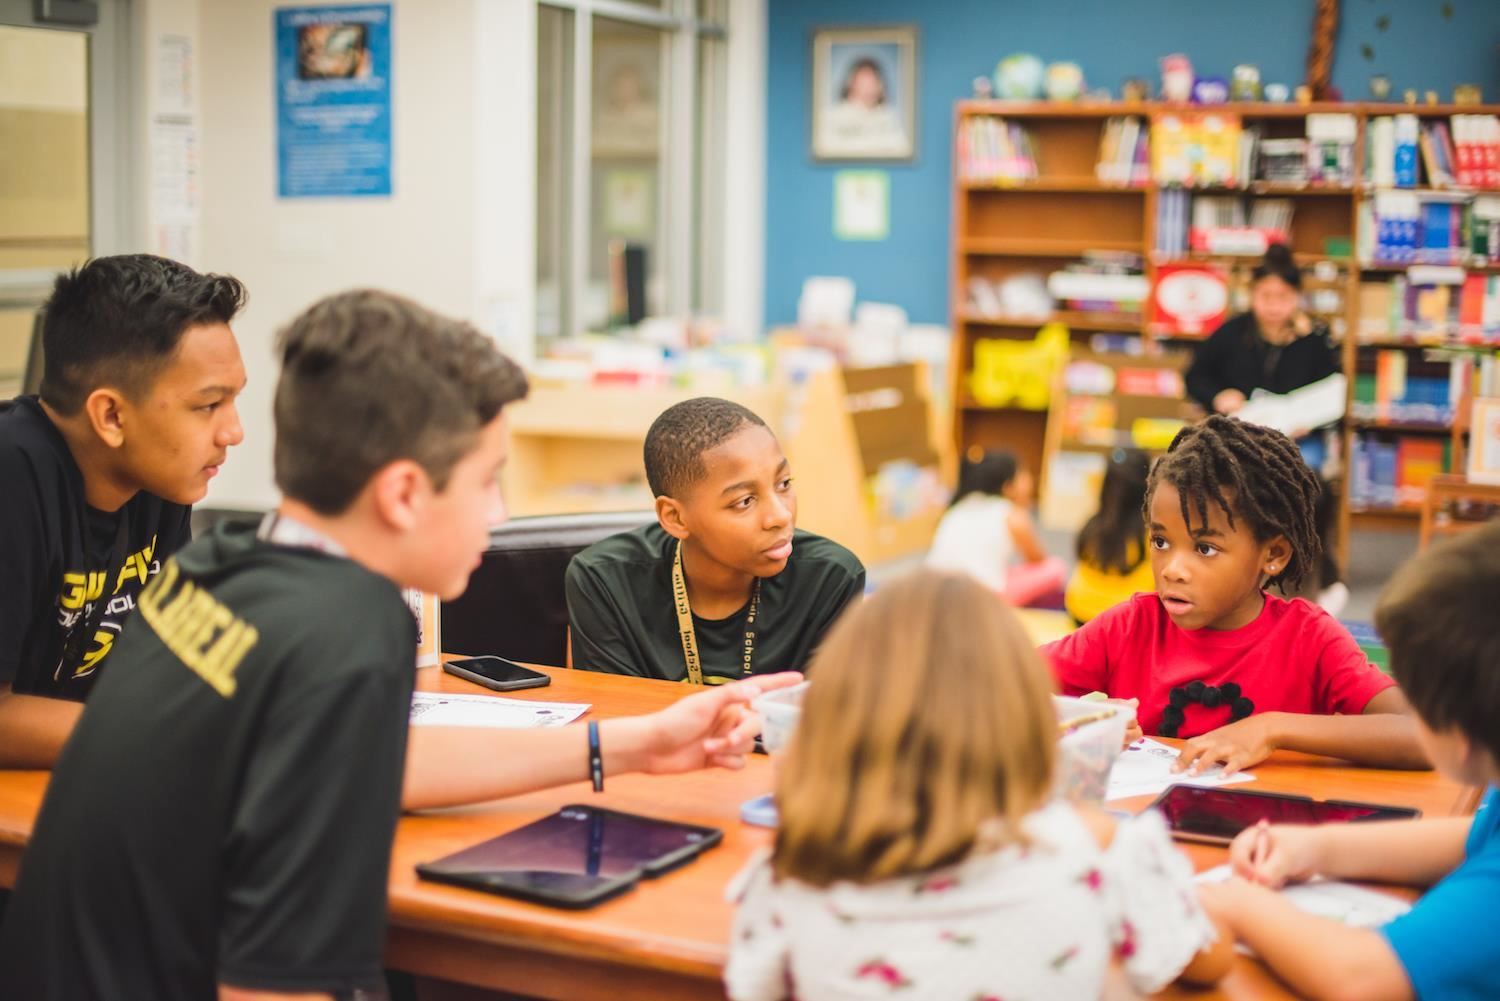 middle school students talk with younger, elementary student in library